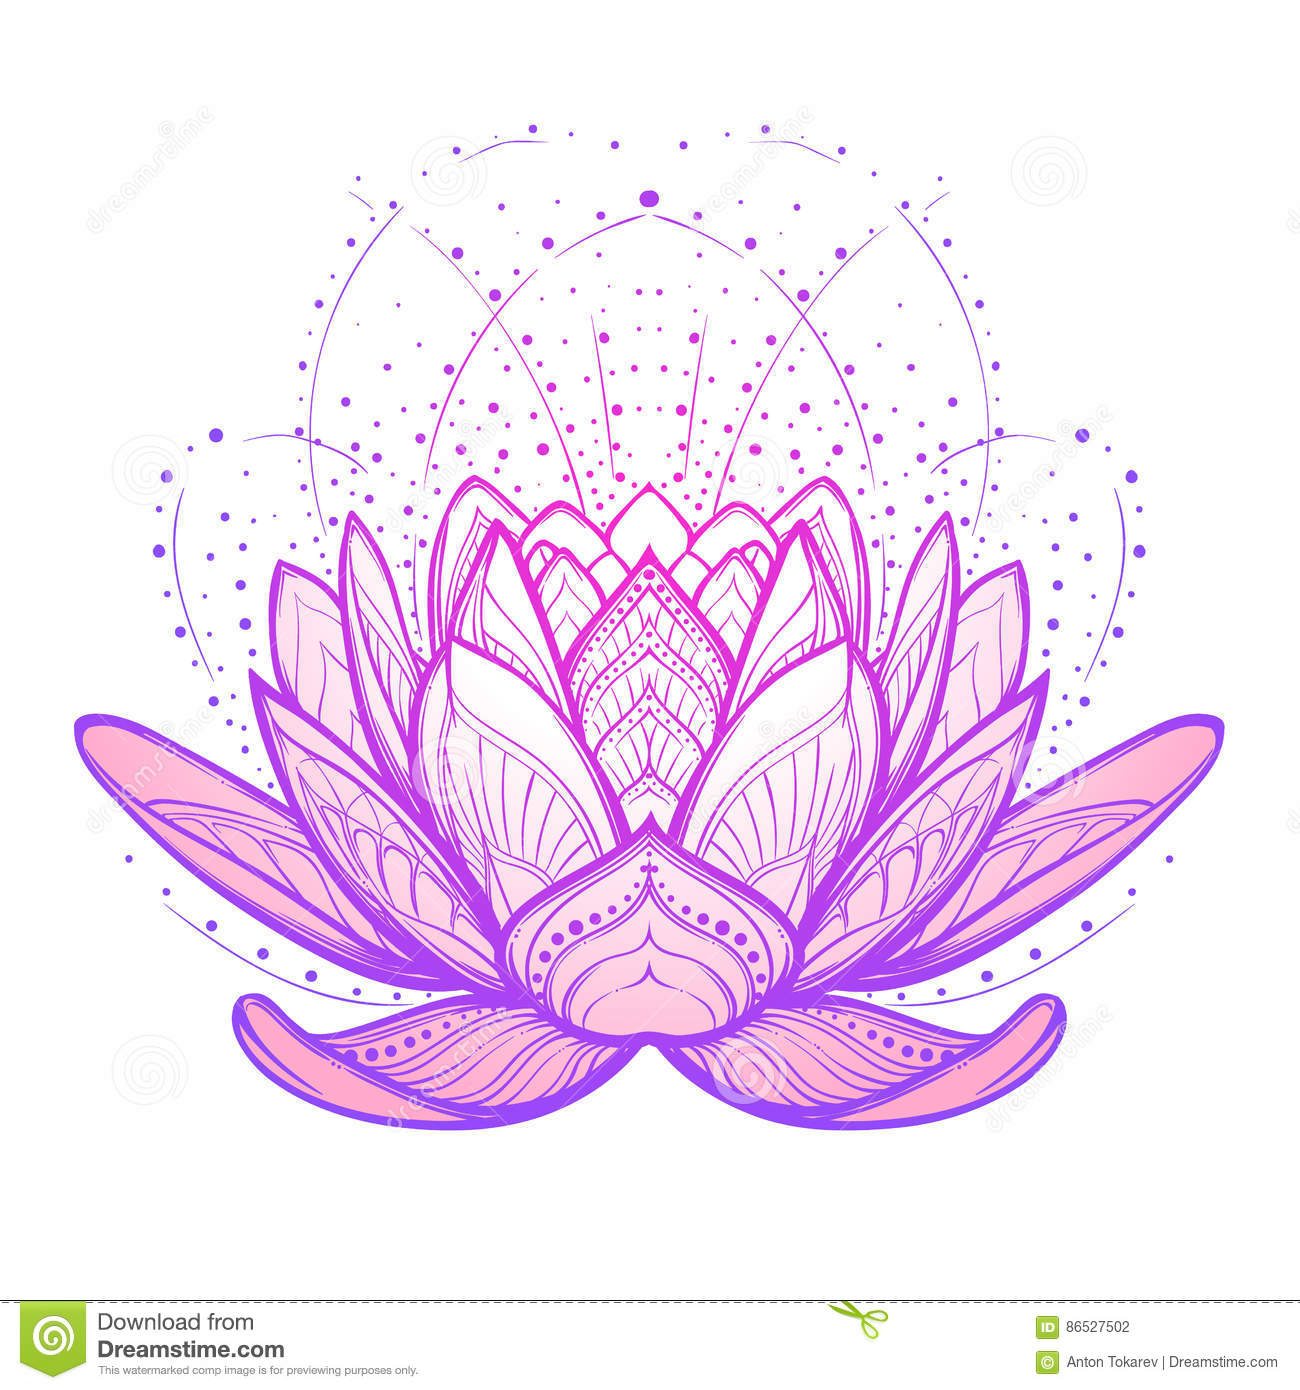 Lotus Flower Intricate Stylized Linear Drawing On White Background